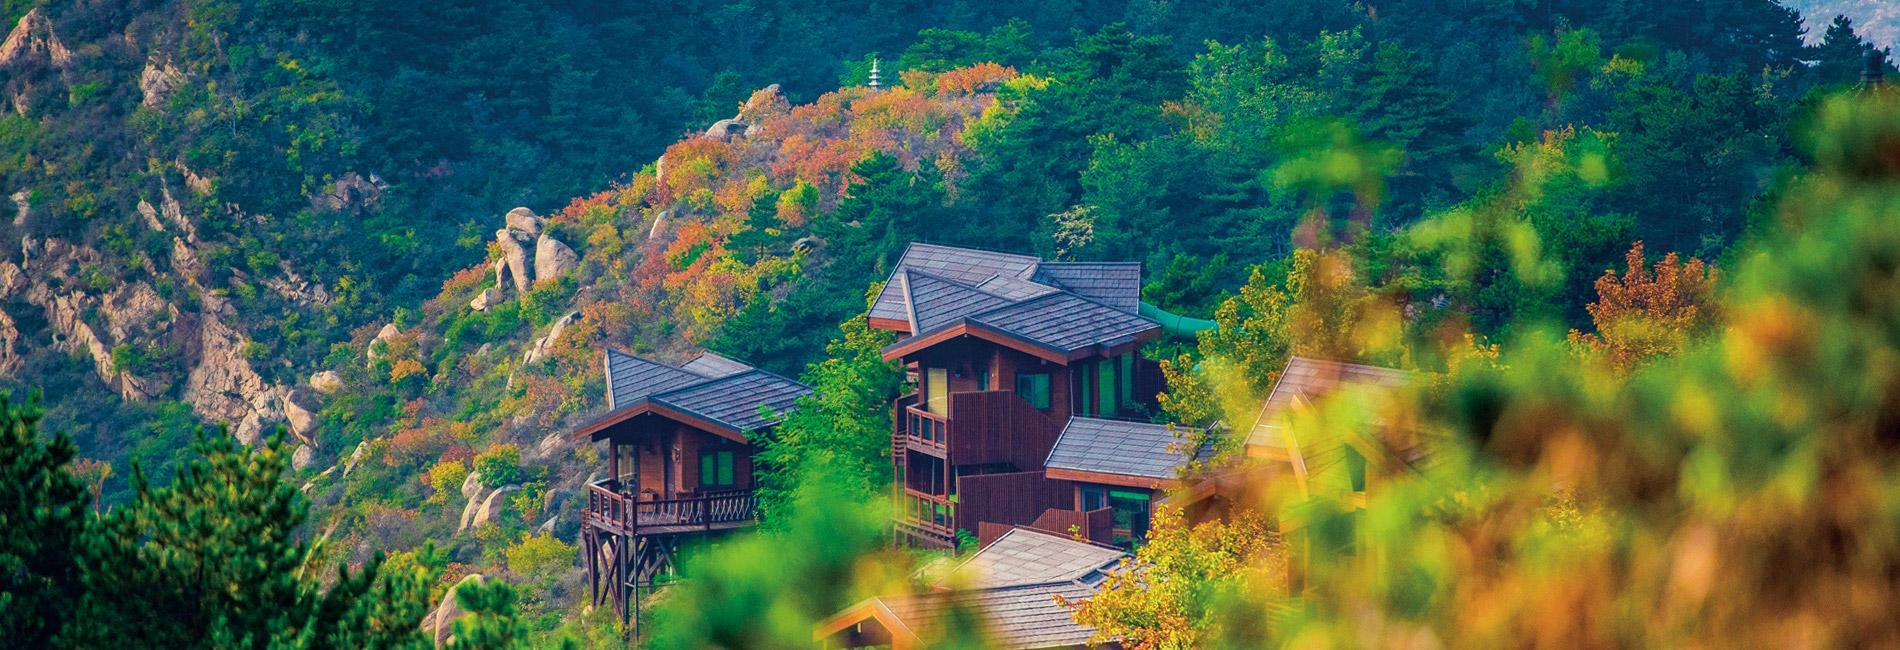 Yunfeng Treehouse, Beijing